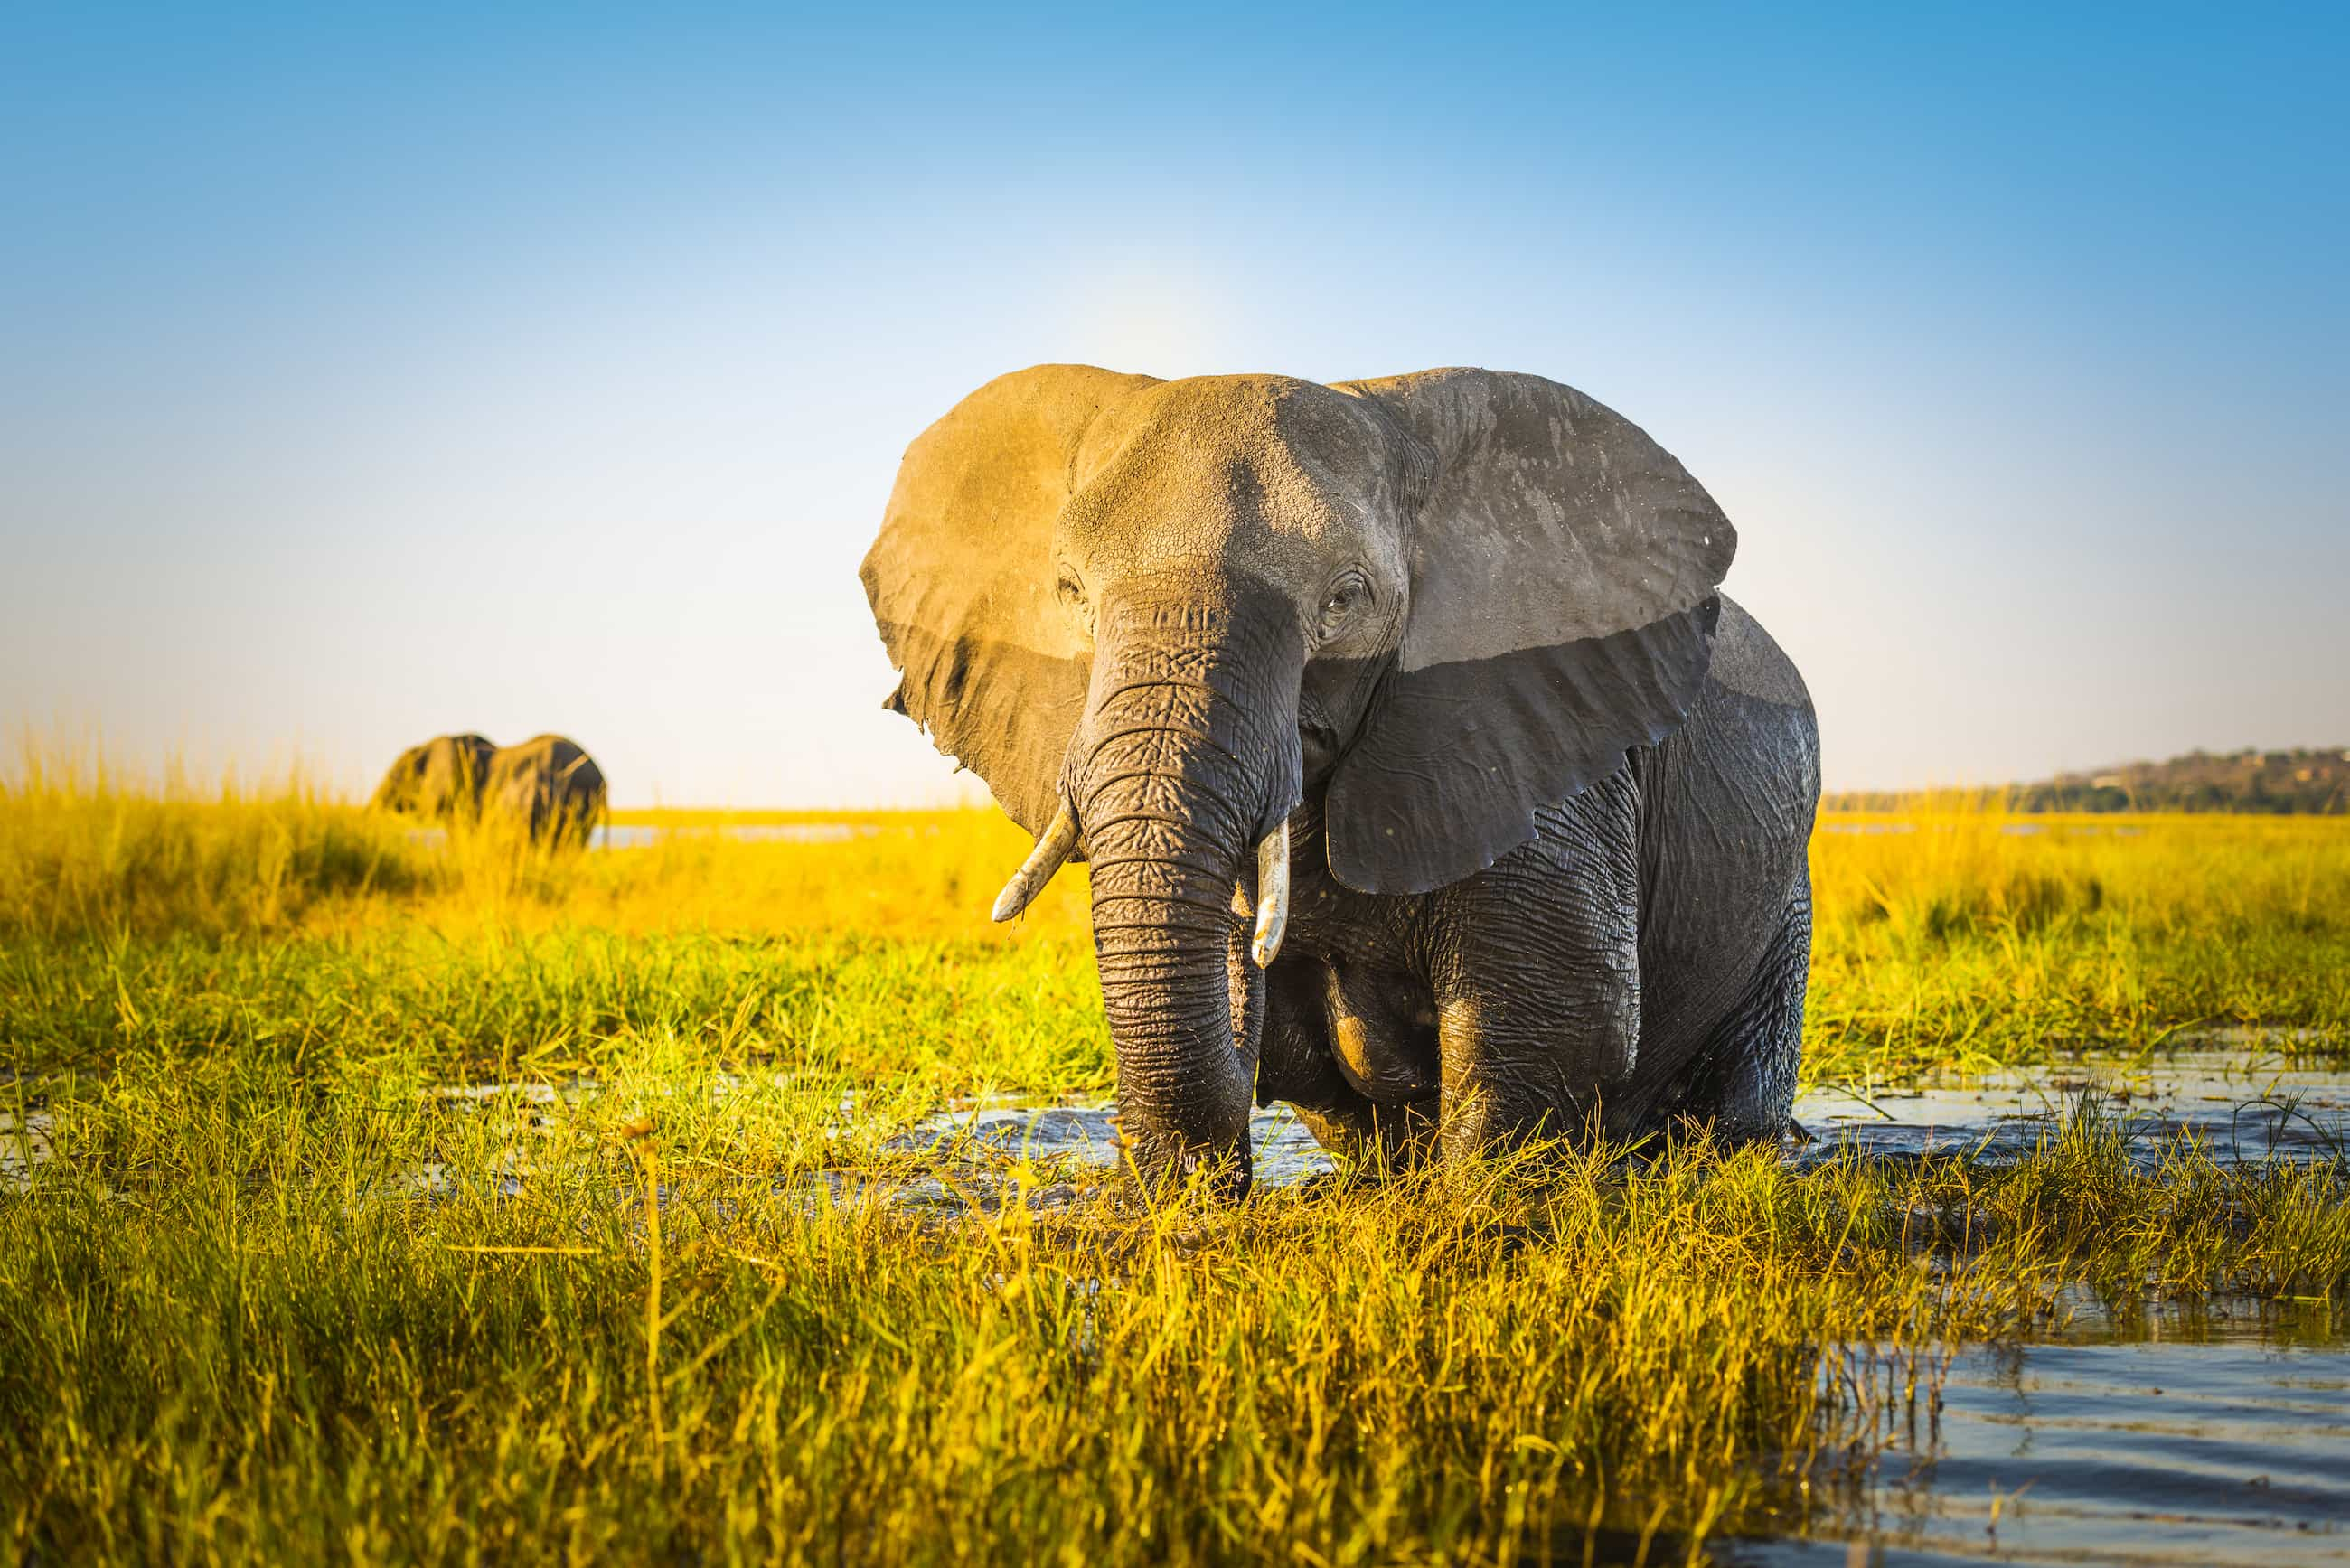 Effective Transformational Change Must Embrace The Entire Elephant — Not Just Its Part